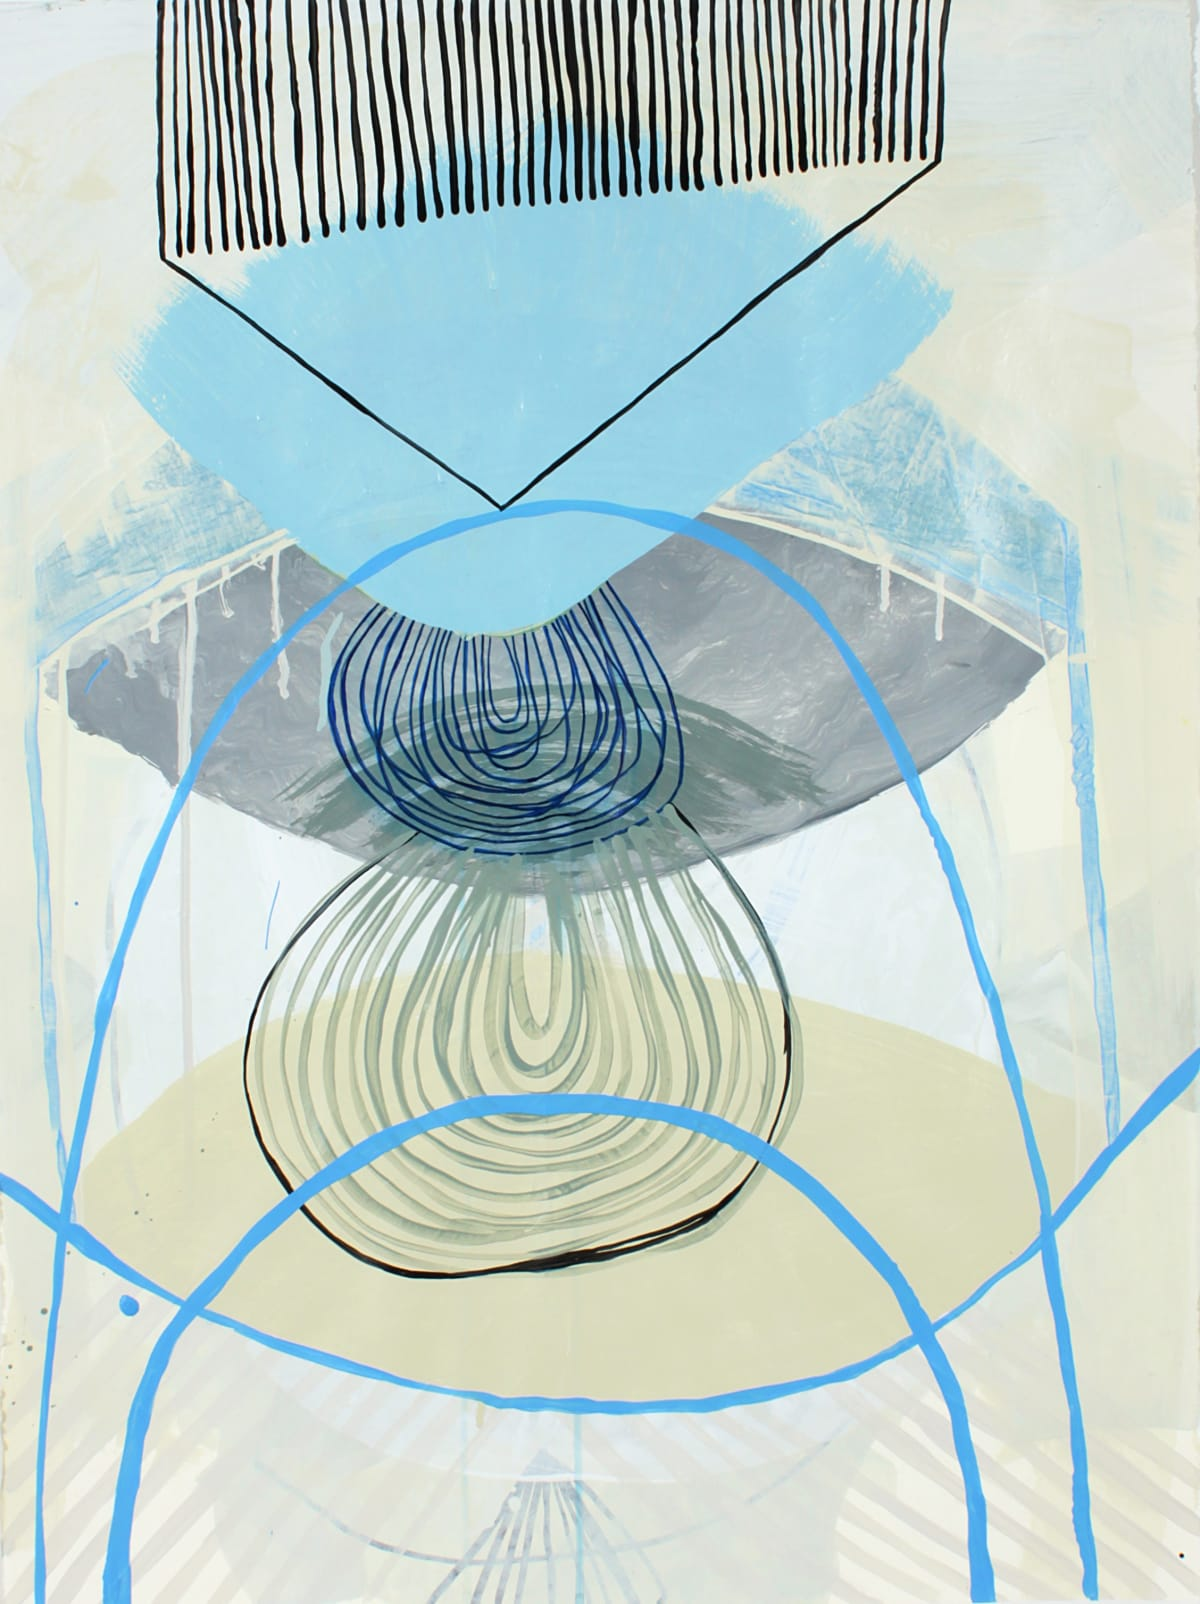 """Ky Anderson's """"Two Over Four"""" done with acrylic and ink on paper in various shades of blue, tan, gray and black. The painting depicts small line strokes on the foreground layer overlapping large more muted flat shape designs."""